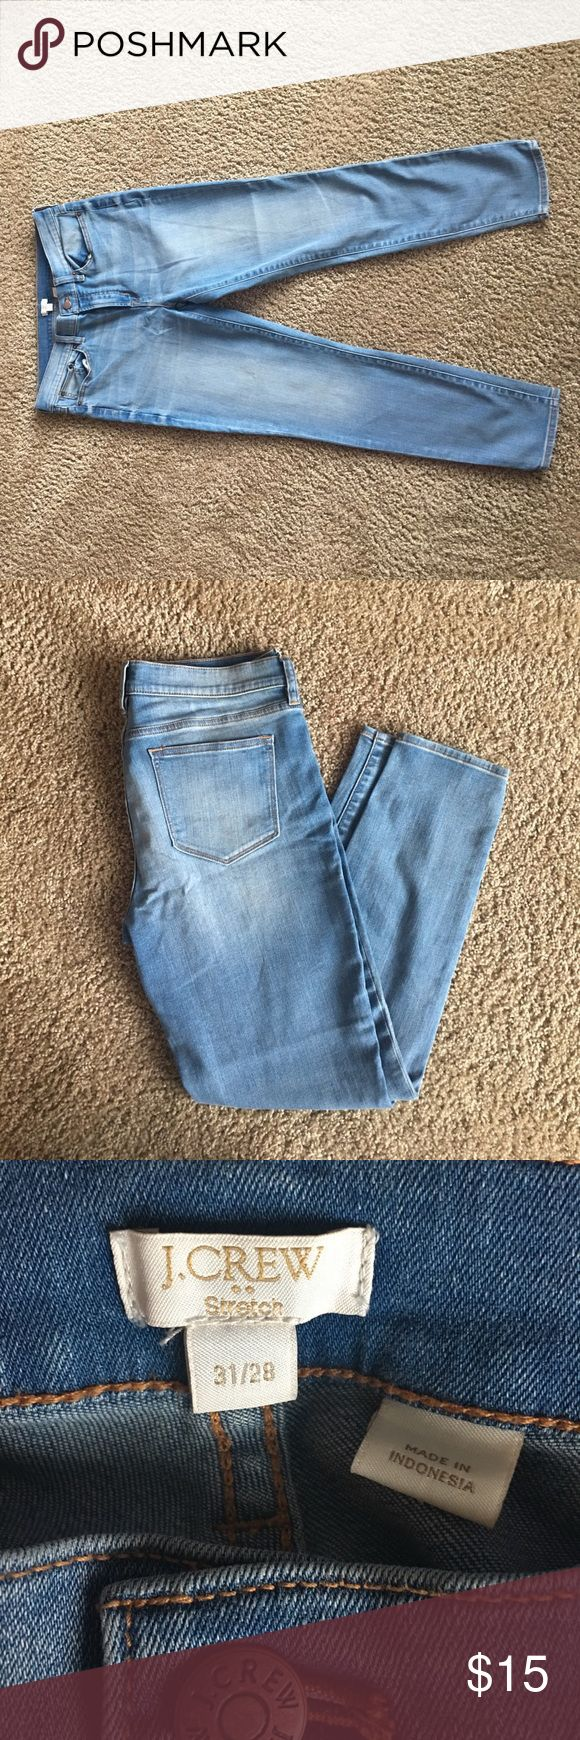 J crew women's jeans 31x28 or 10/12 Women's cropped skinny jeans J. Crew factory. *Like New* size 31x28 or 10/12.  These fit more like a 10 and they have good stretch!. Zero signs of wear, stains, or rips!. Bundle for discount 😊smoke fret free home😊 J. Crew Jeans